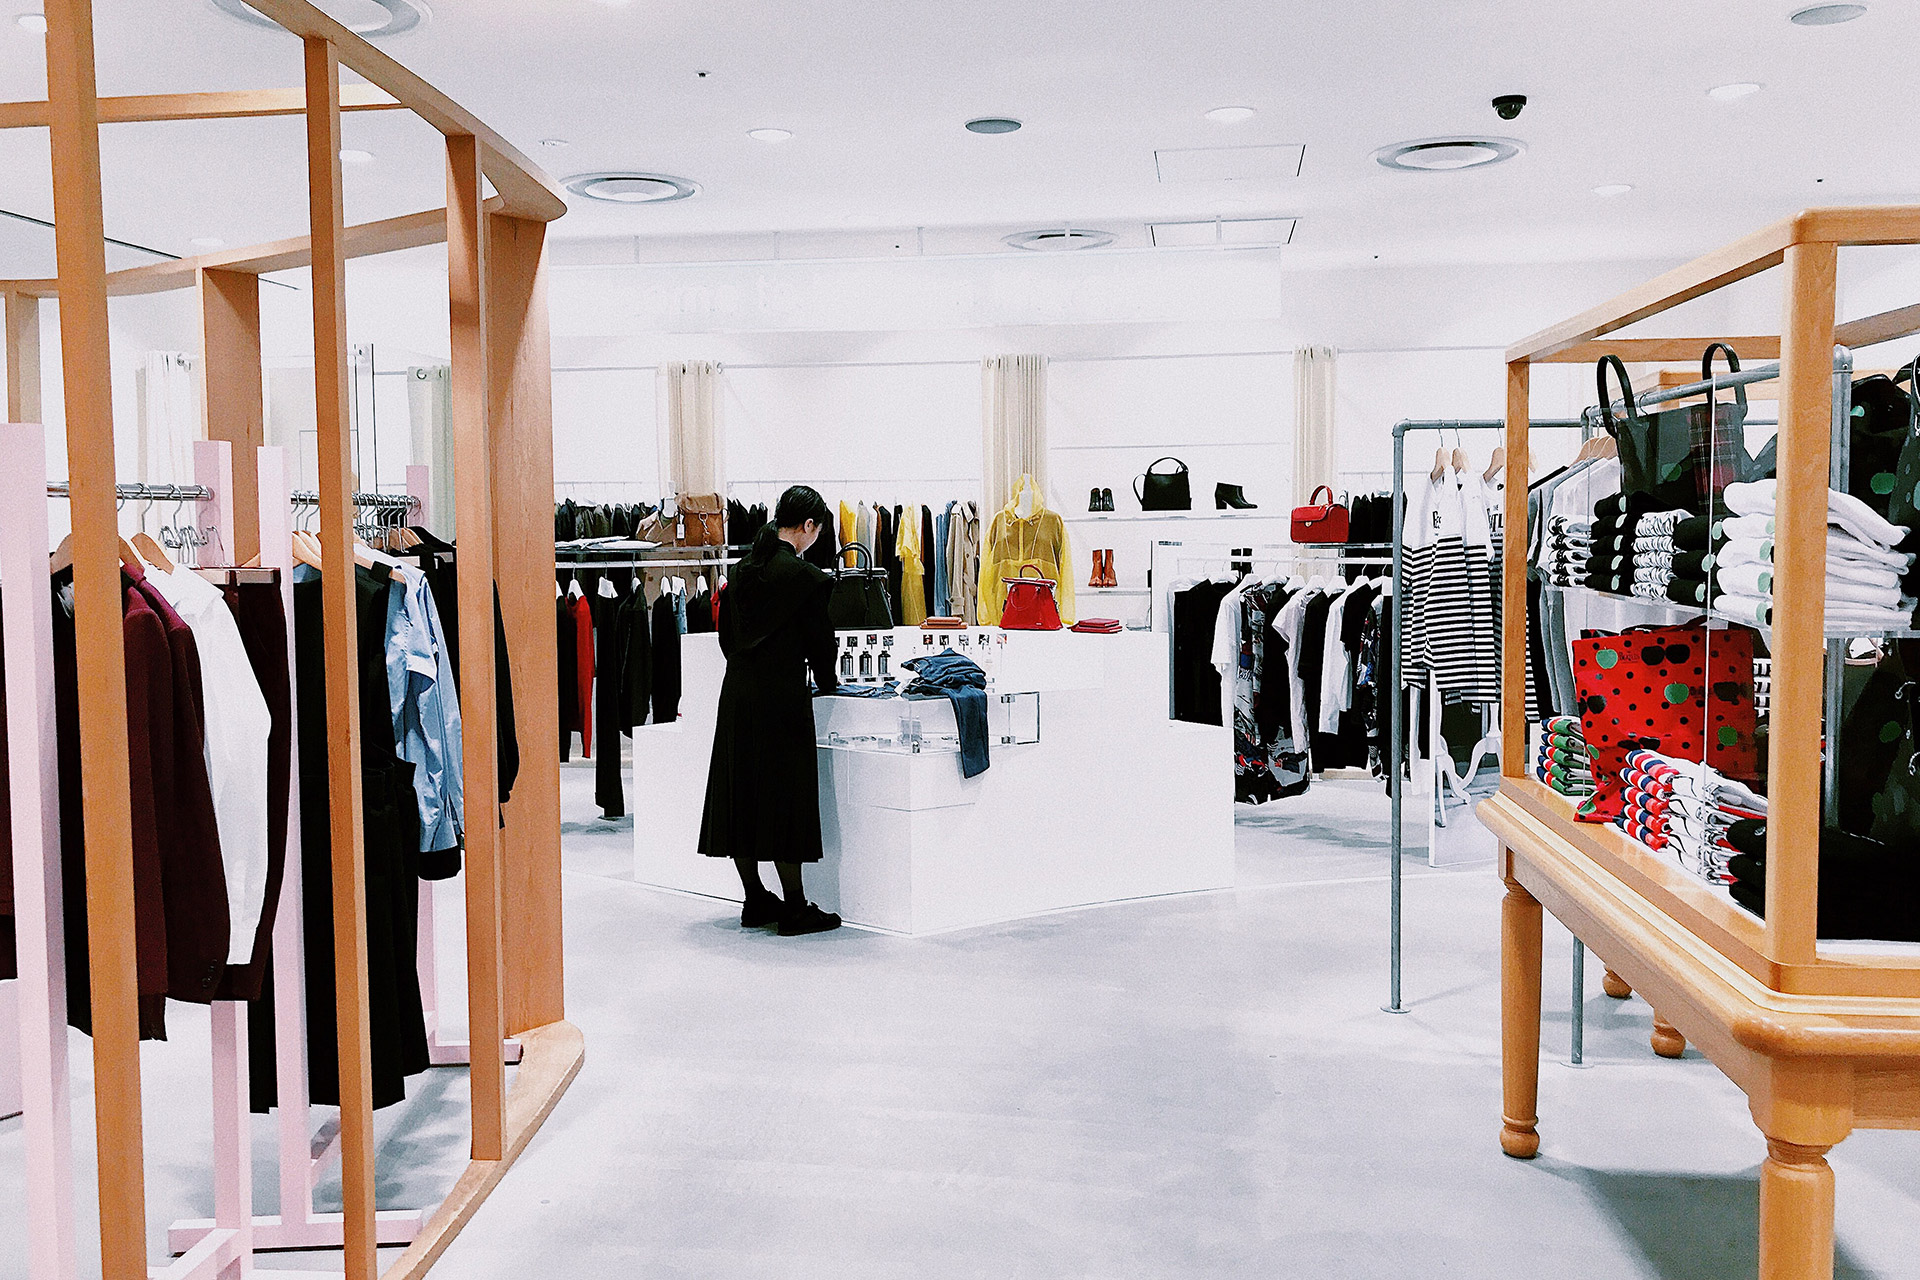 The Dos and Don'ts of Building a Store